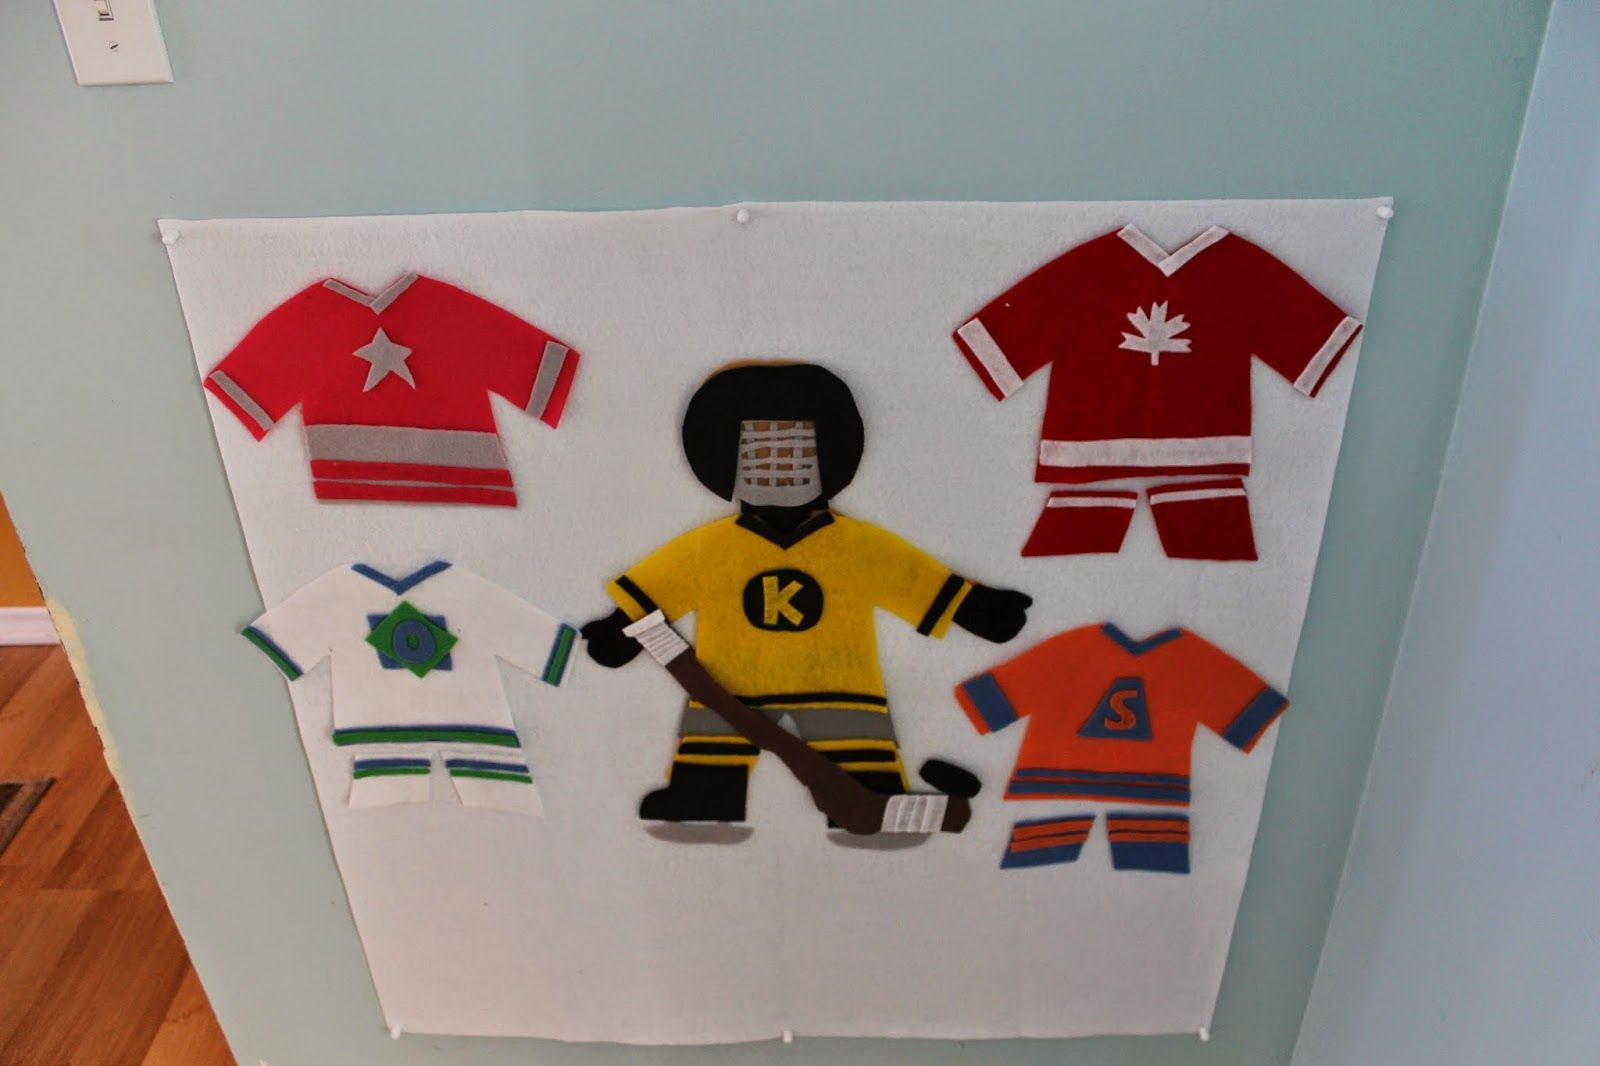 Pin The Equipment On The Hockey Player Game Made Out Of